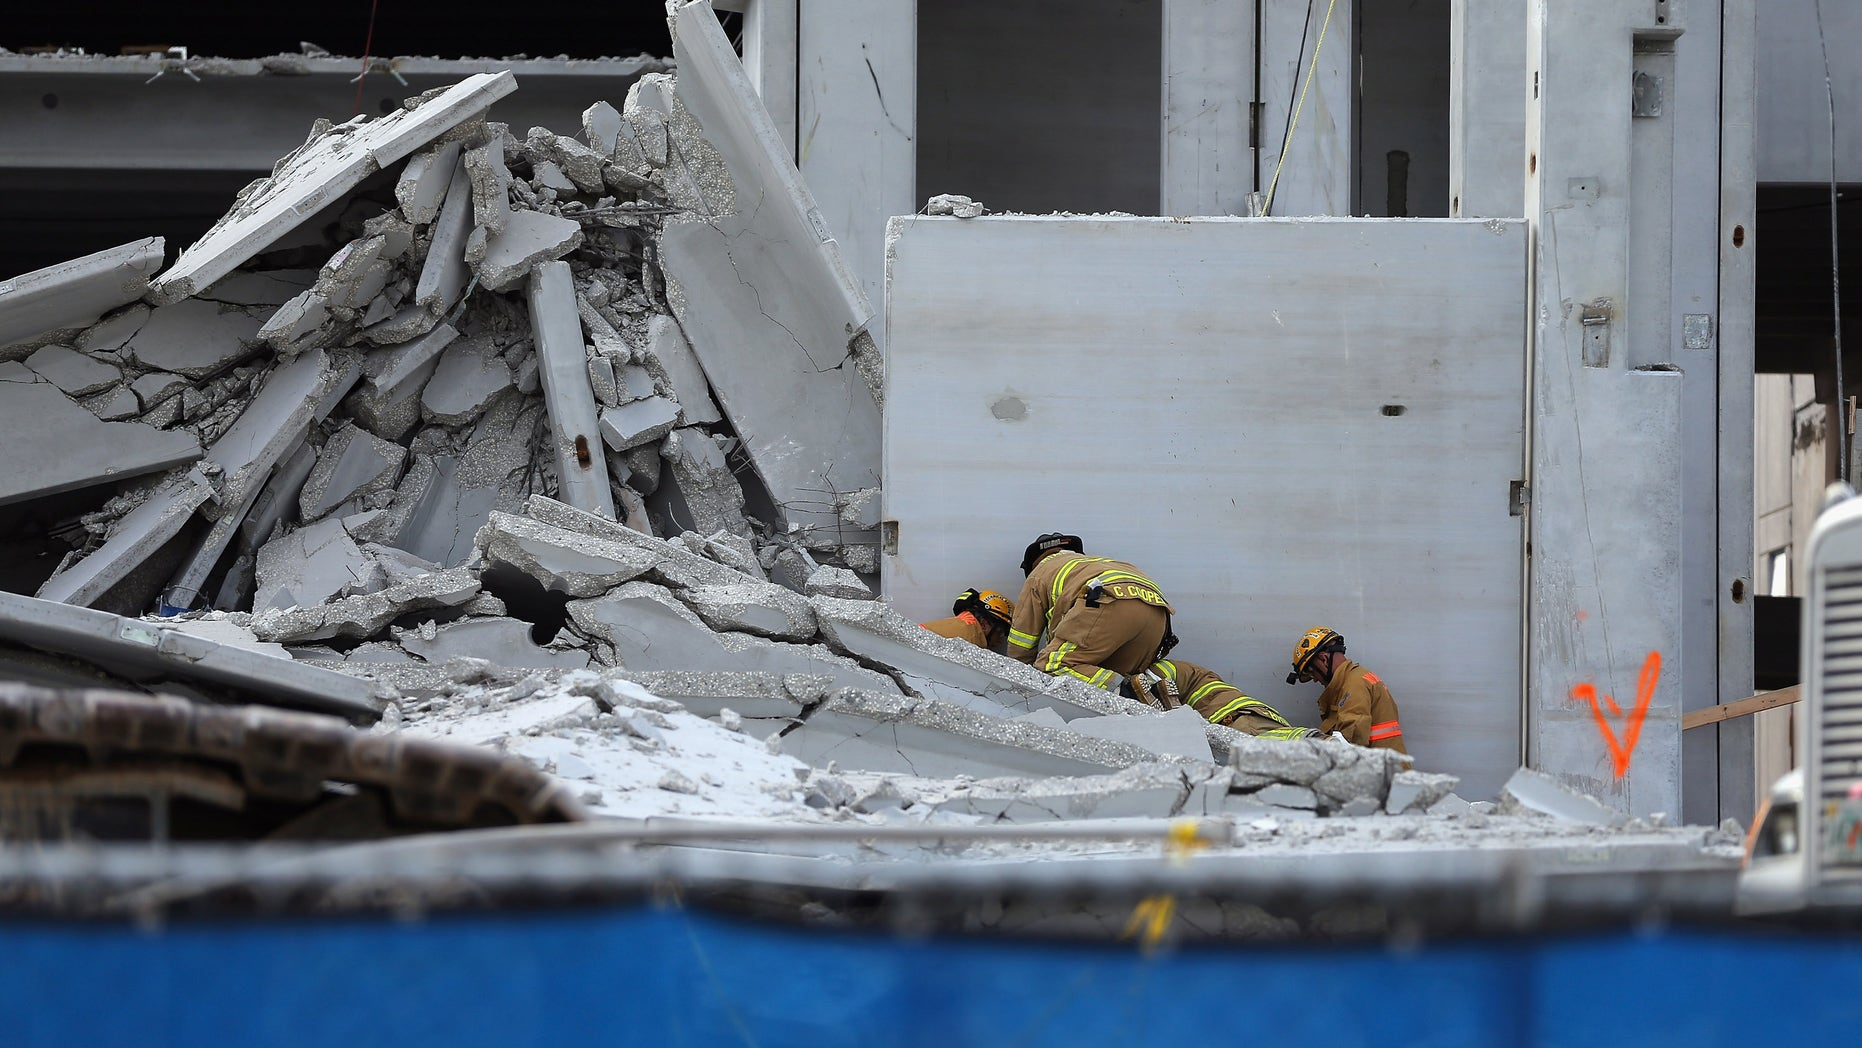 DORAL, FL - OCTOBER 10:  Miami-Dade Rescue workers prepare to pull a body out of the rubble of a four-story parking garage that was under construction and collapsed at the Miami Dade College?s West Campus on October 10, 2012 in Doral, Florida.  Early reports indicate that one person was killed in the collapse, at least seven people injured and one person may still be trapped in the rubble.  (Photo by Joe Raedle/Getty Images)